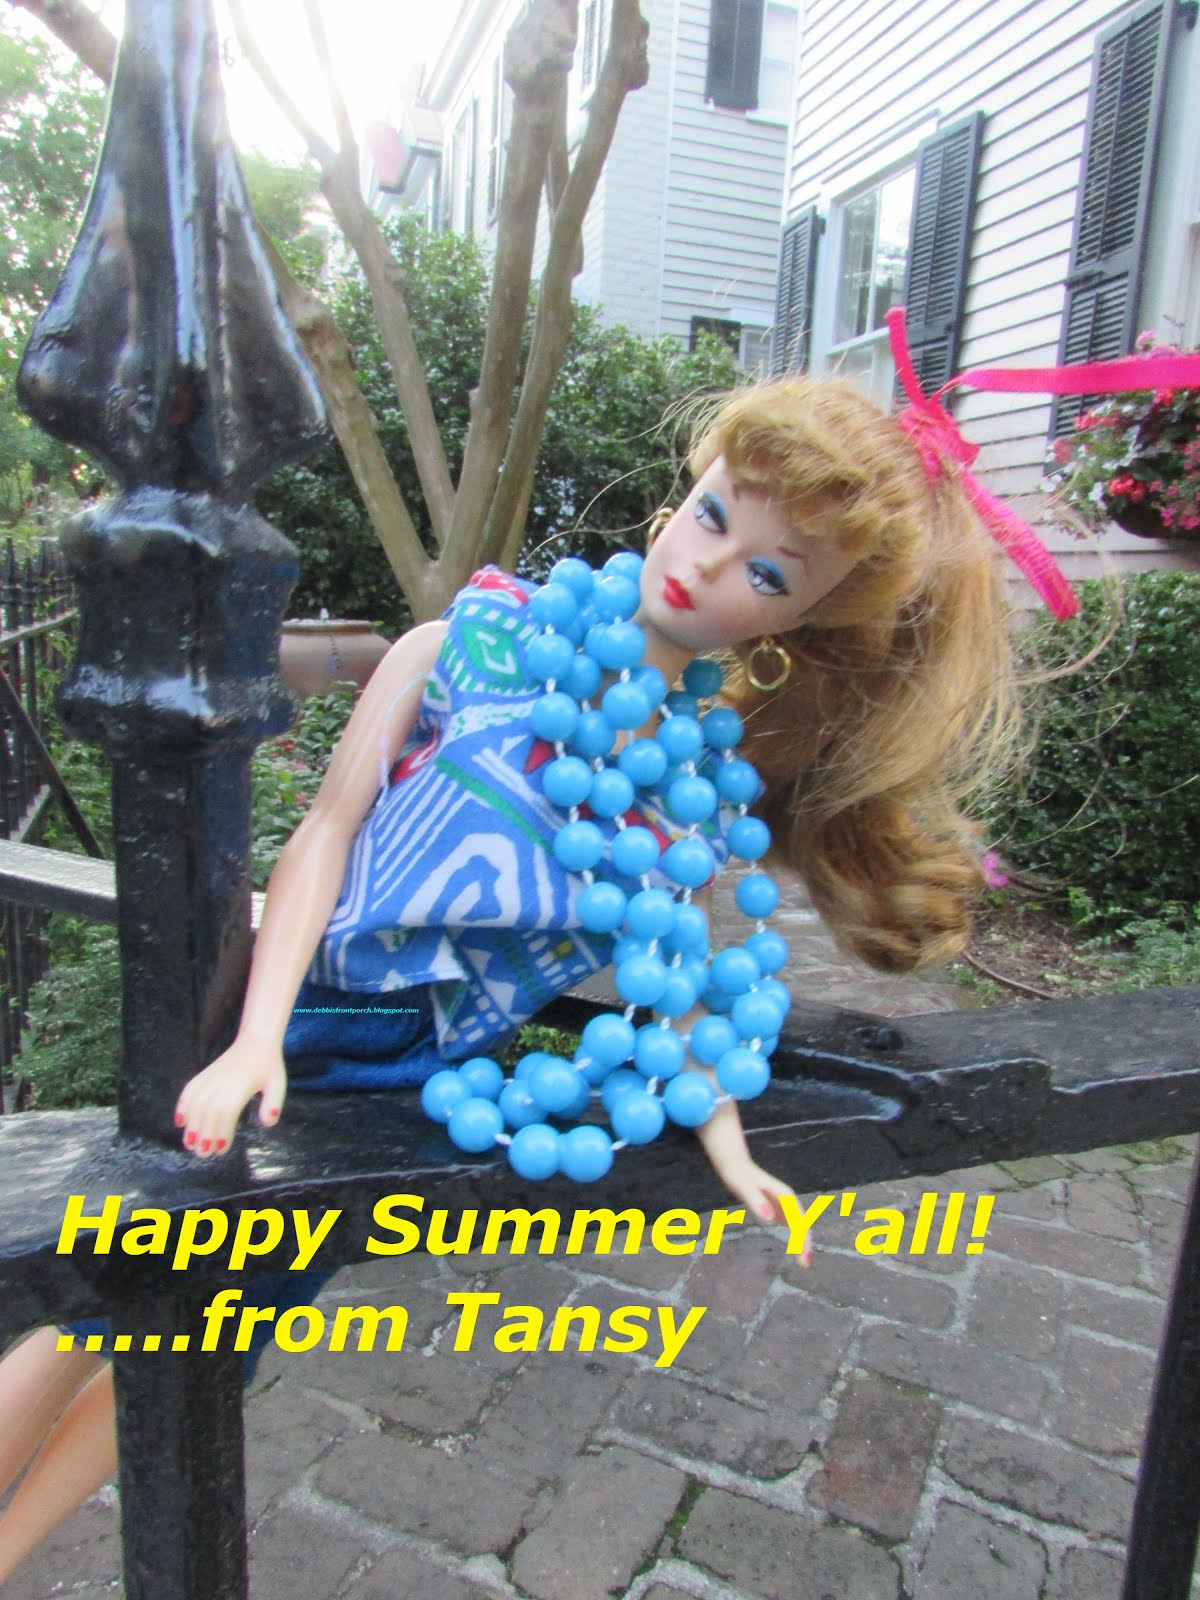 Hope you are having a great summer!